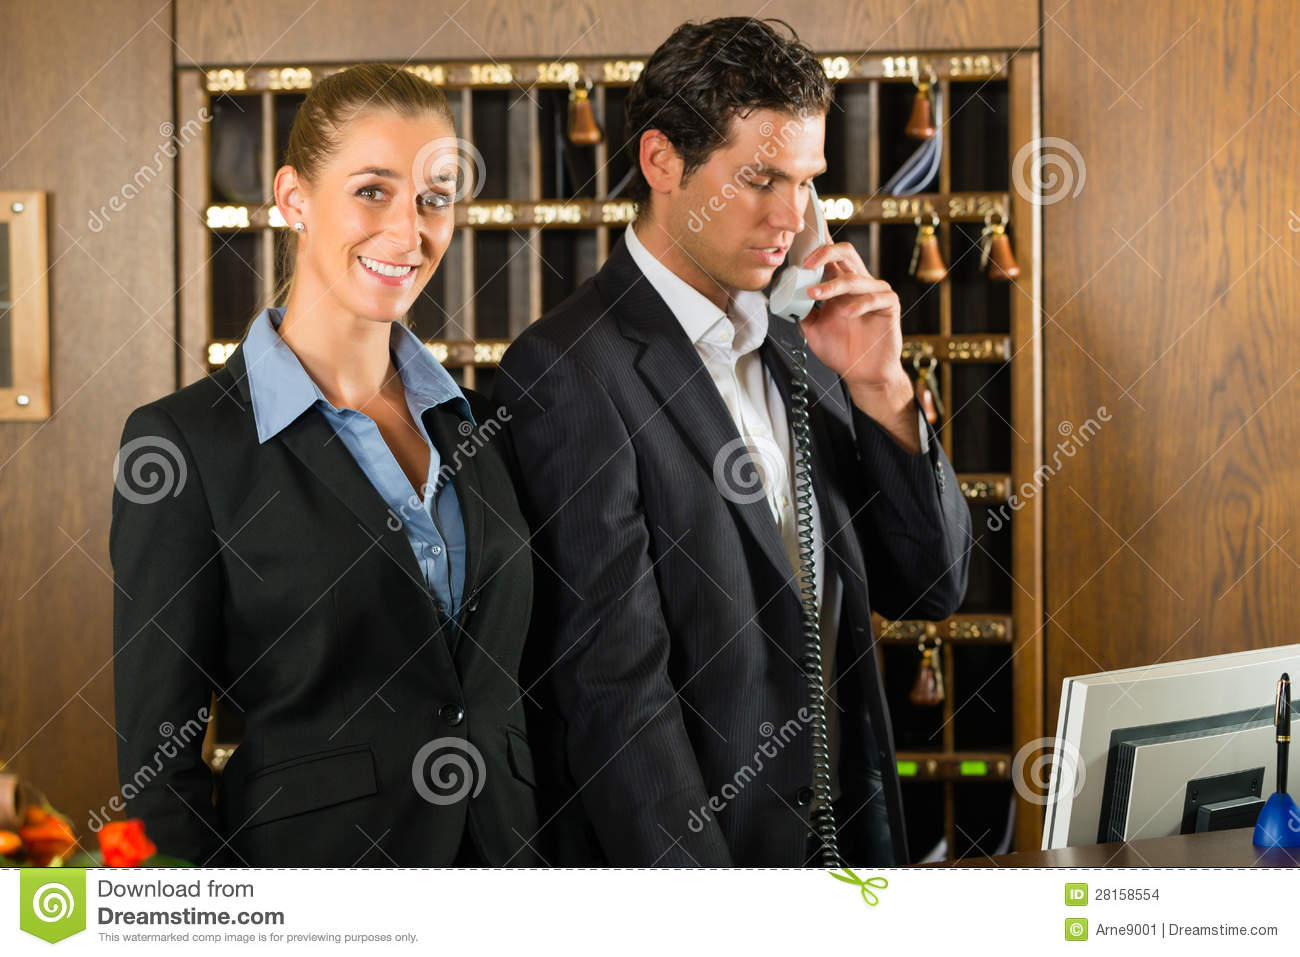 Reception in hotel - Man and woman